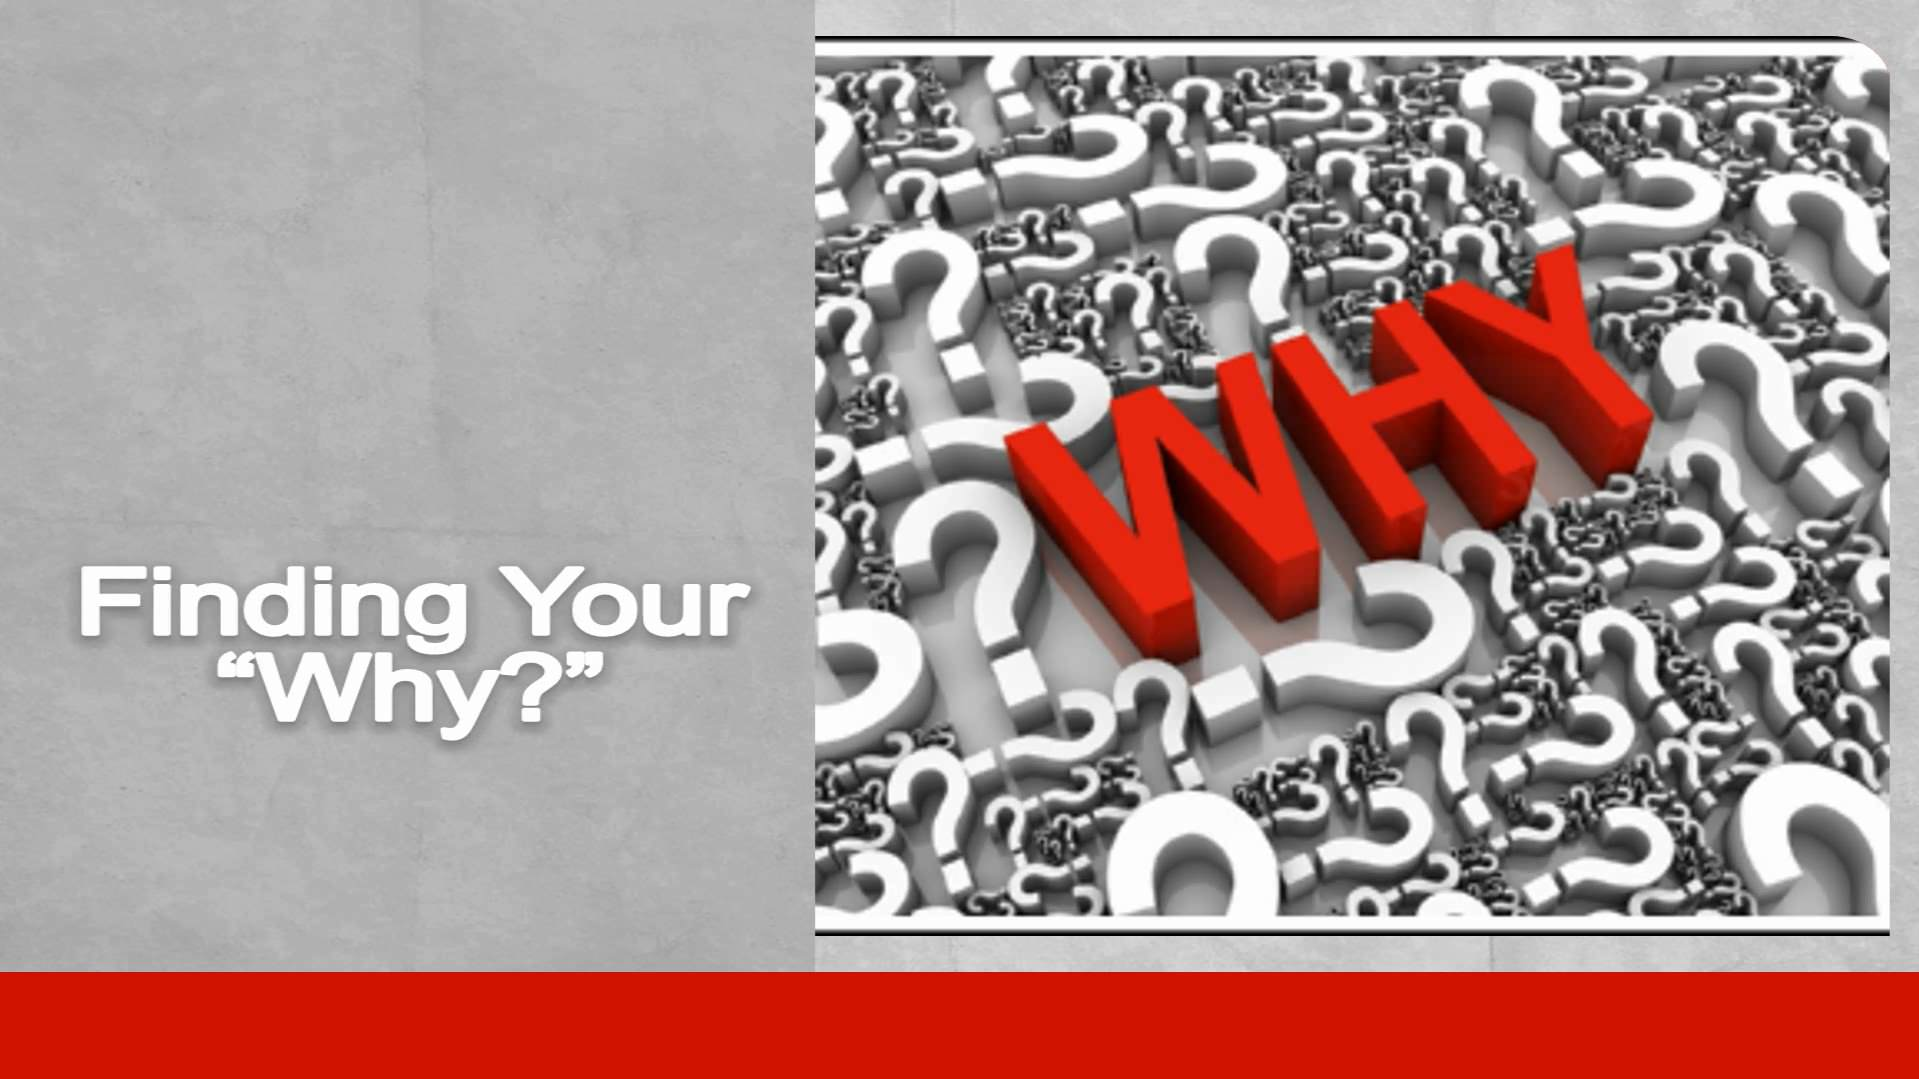 """Finding Your """"Why?"""""""